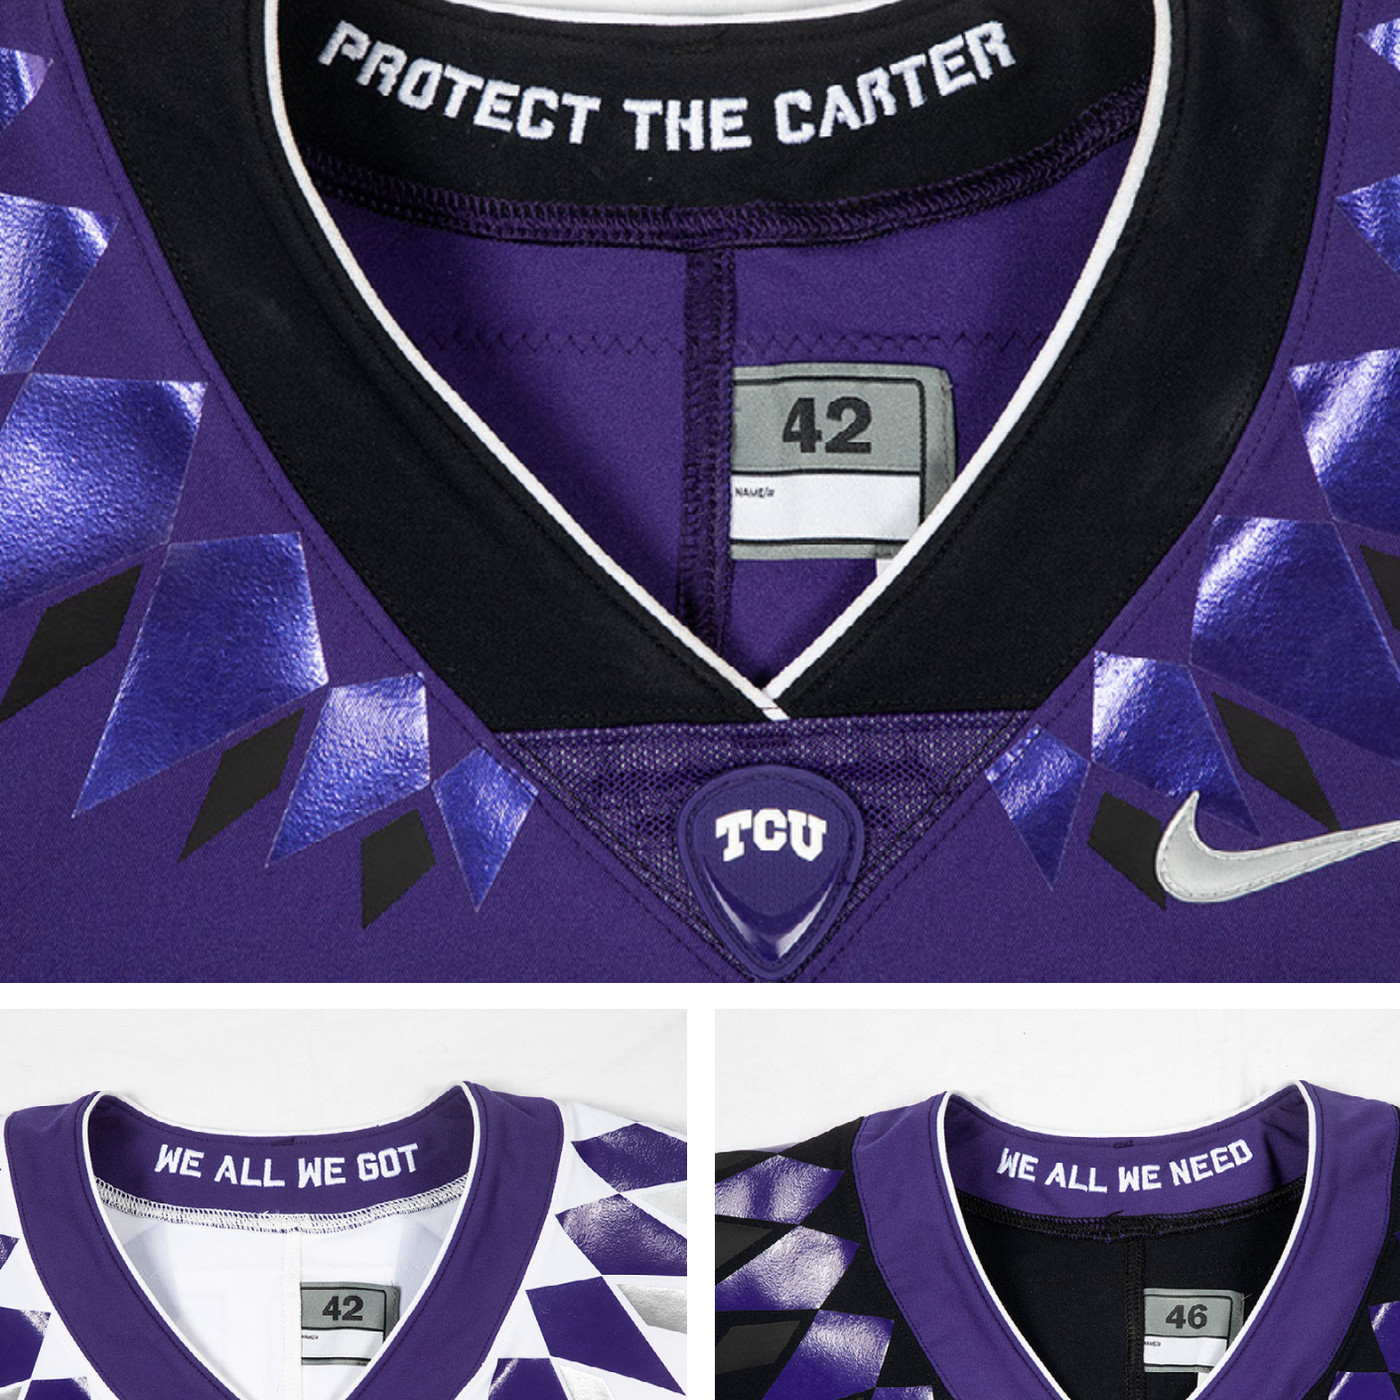 ed2d8df195c TCU Football revealed their uniforms Wednesday. Here's what people thought  about the new look.